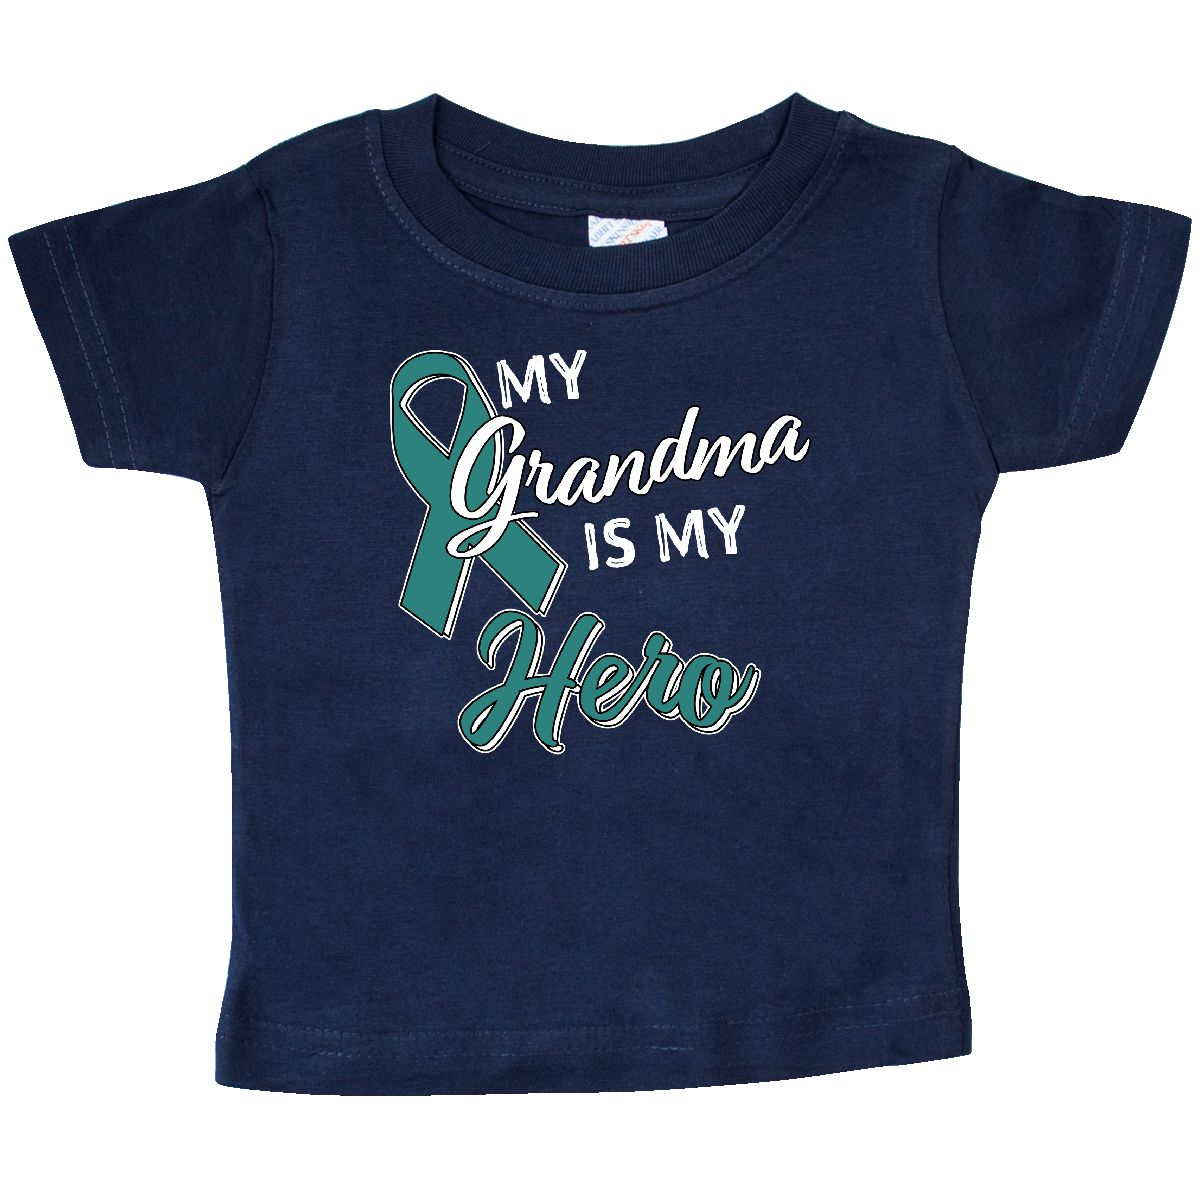 inktastic Ovarian Cancer Awareness My Great Grandma is a Fighter Baby T-Shirt